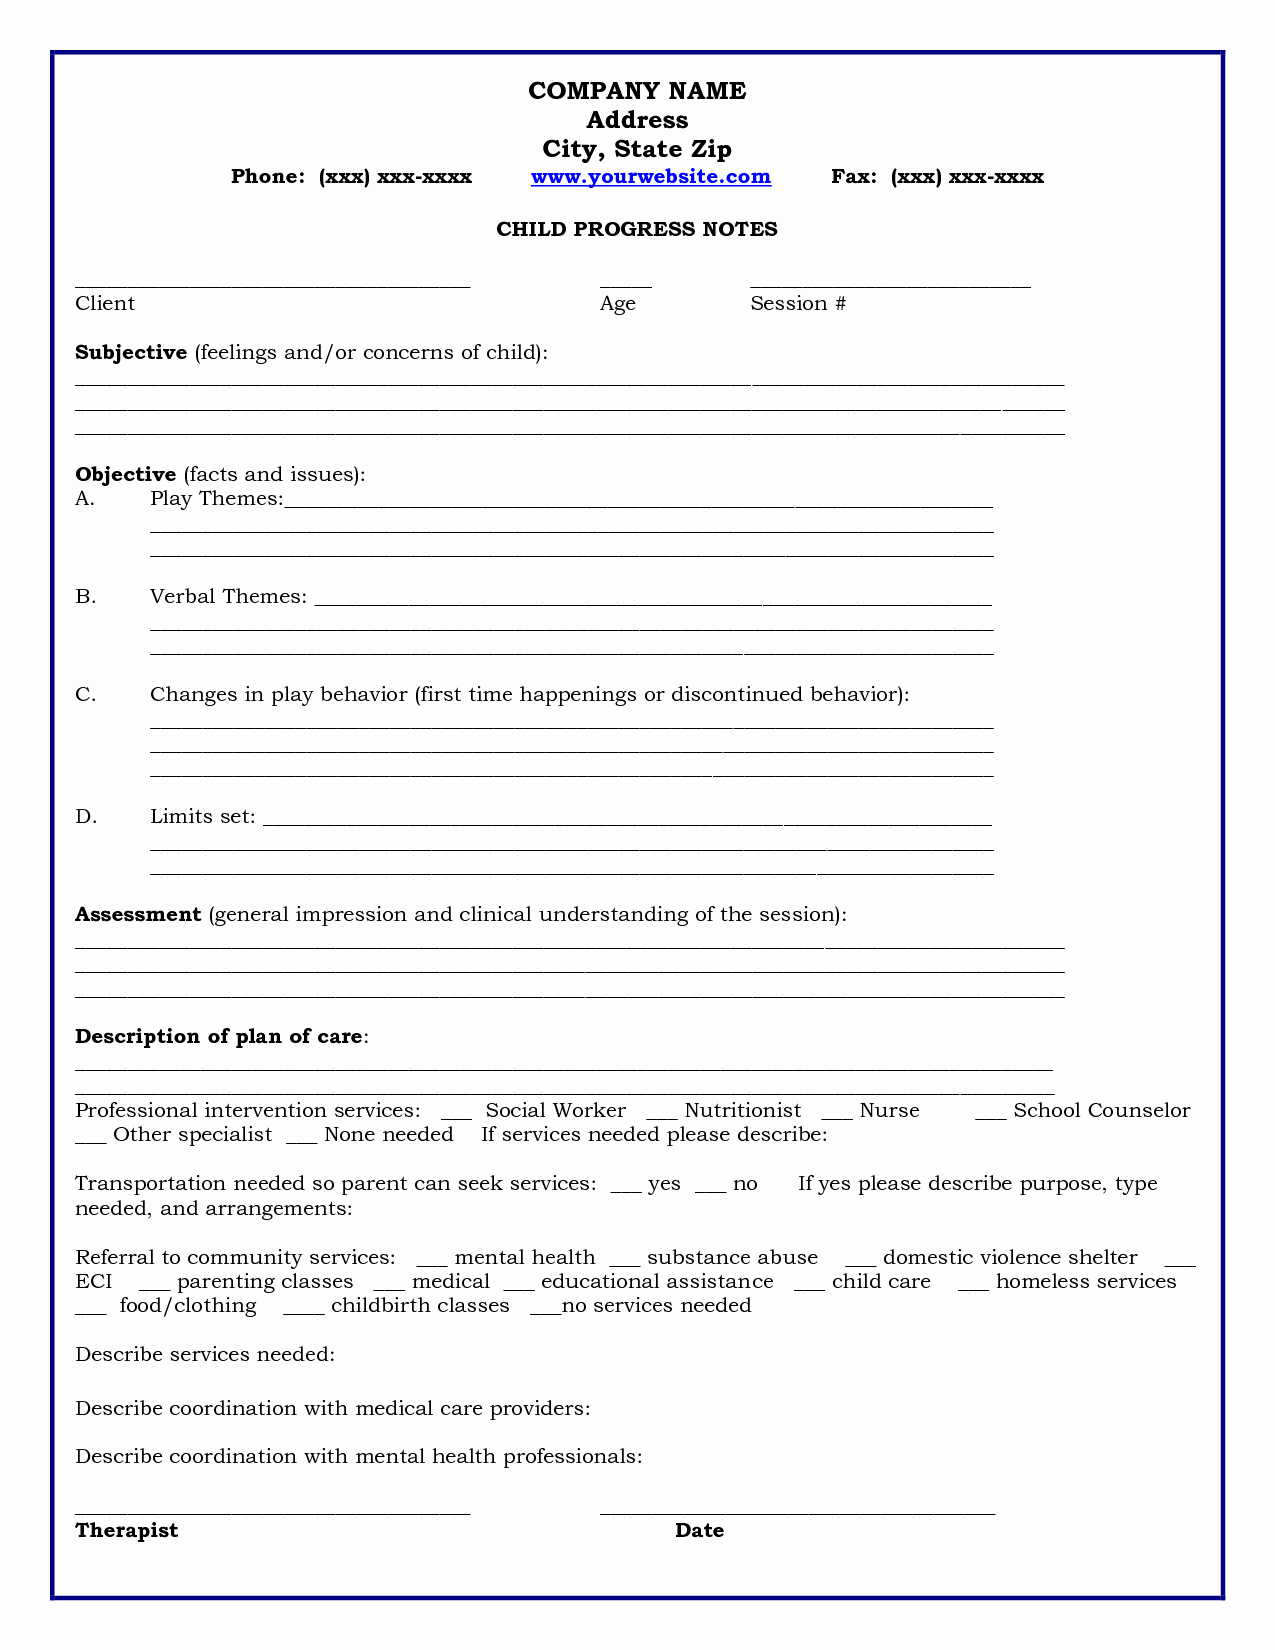 Therapy Progress Note Template Free Luxury Home Child Progress Notes Medicaid Child Progress